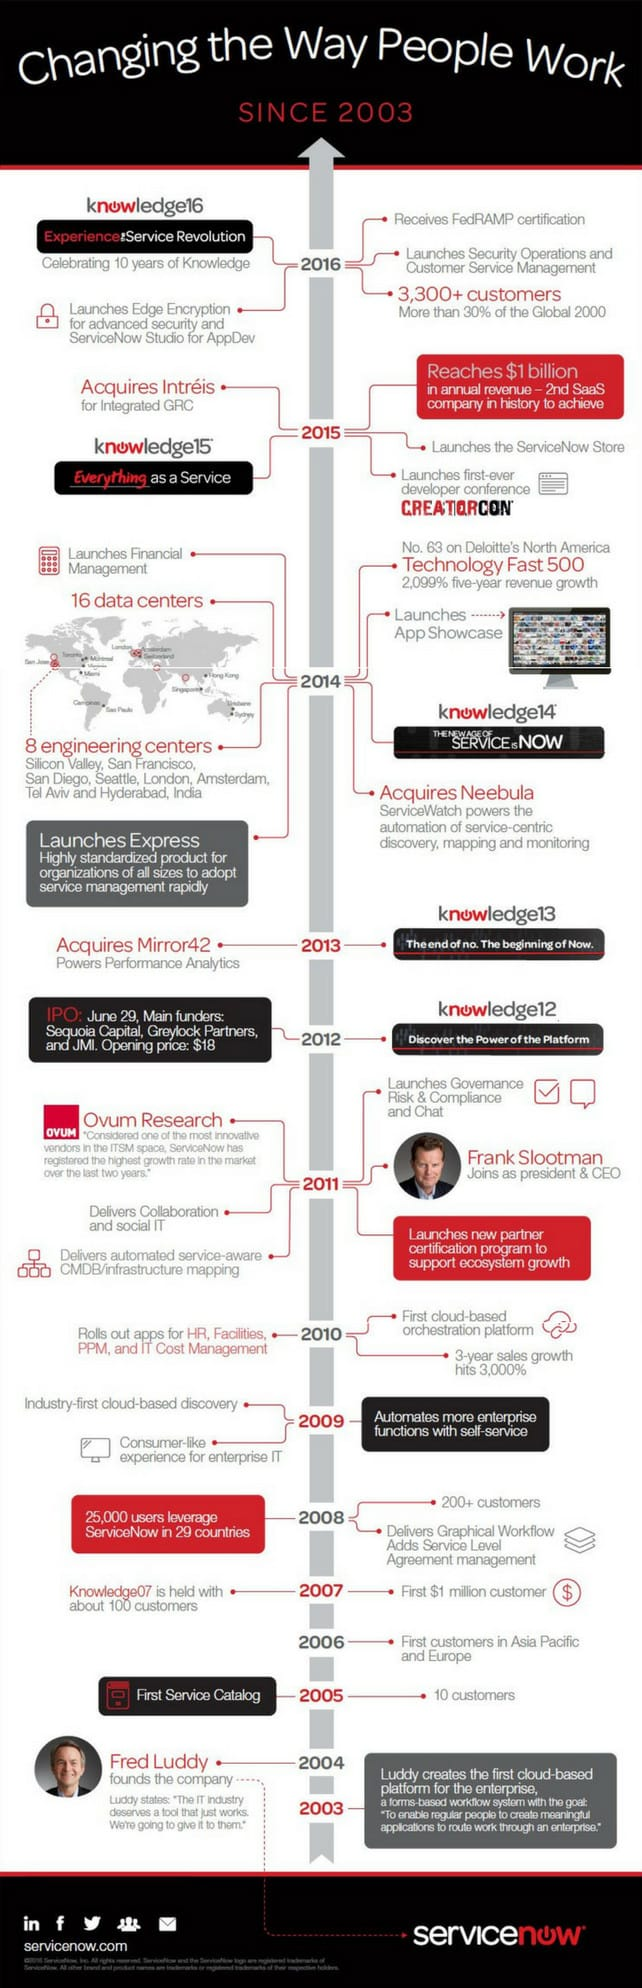 infographic ServiceNow history and demographics